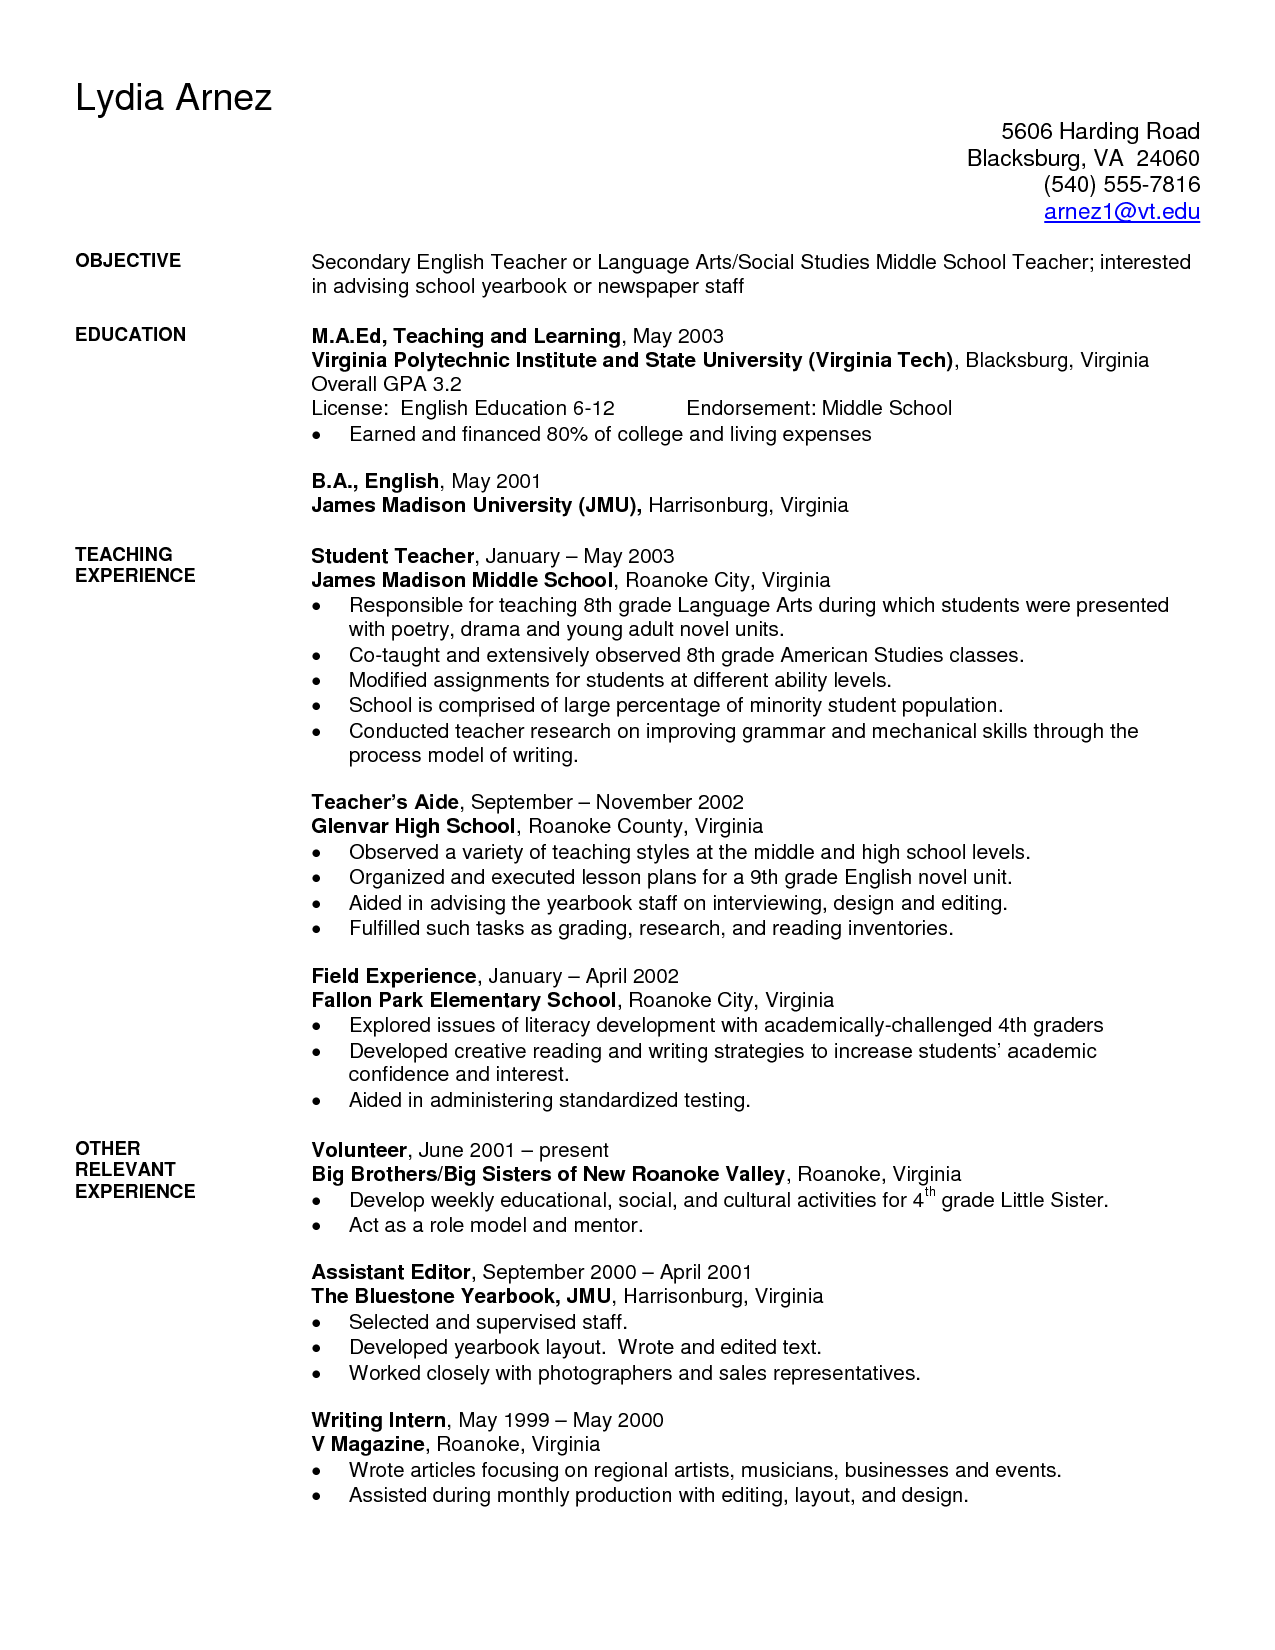 Teacher Resume Examples Impressive Art Ceramic Teacher Resume  Resume  Good To Know  Pinterest Inspiration